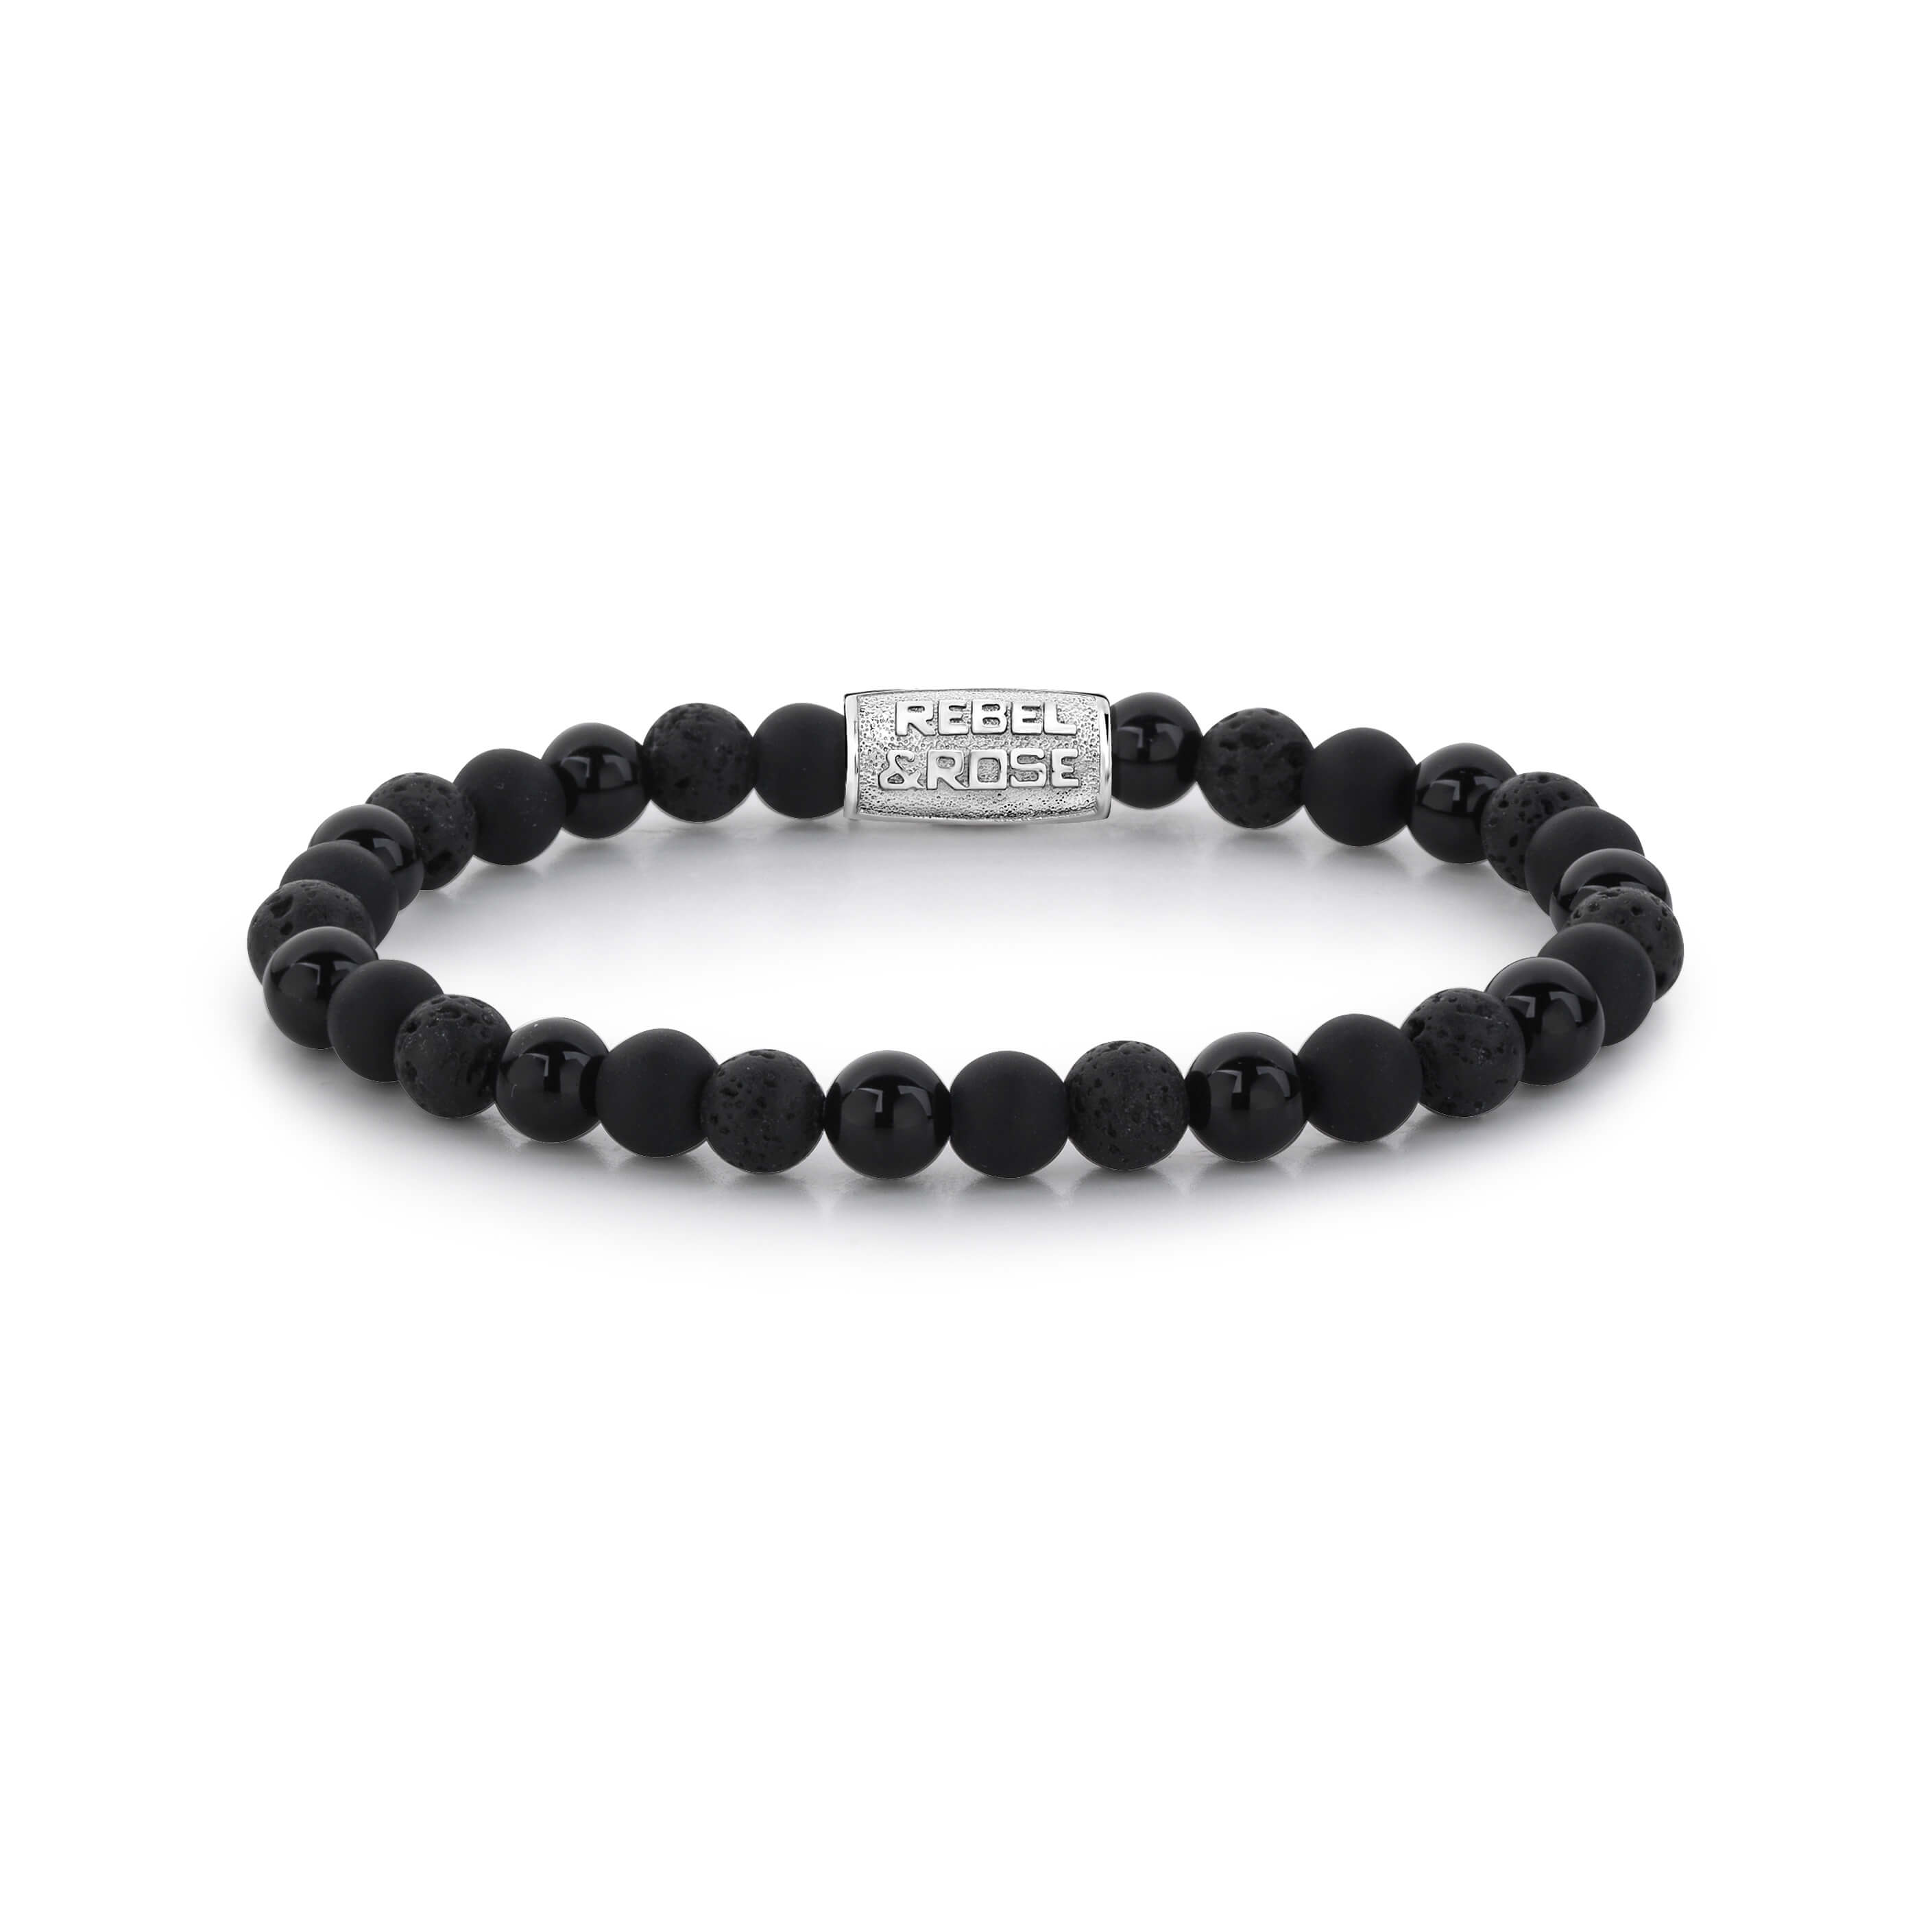 Bracelet Black Rocks 6mm - Rebel & Rose